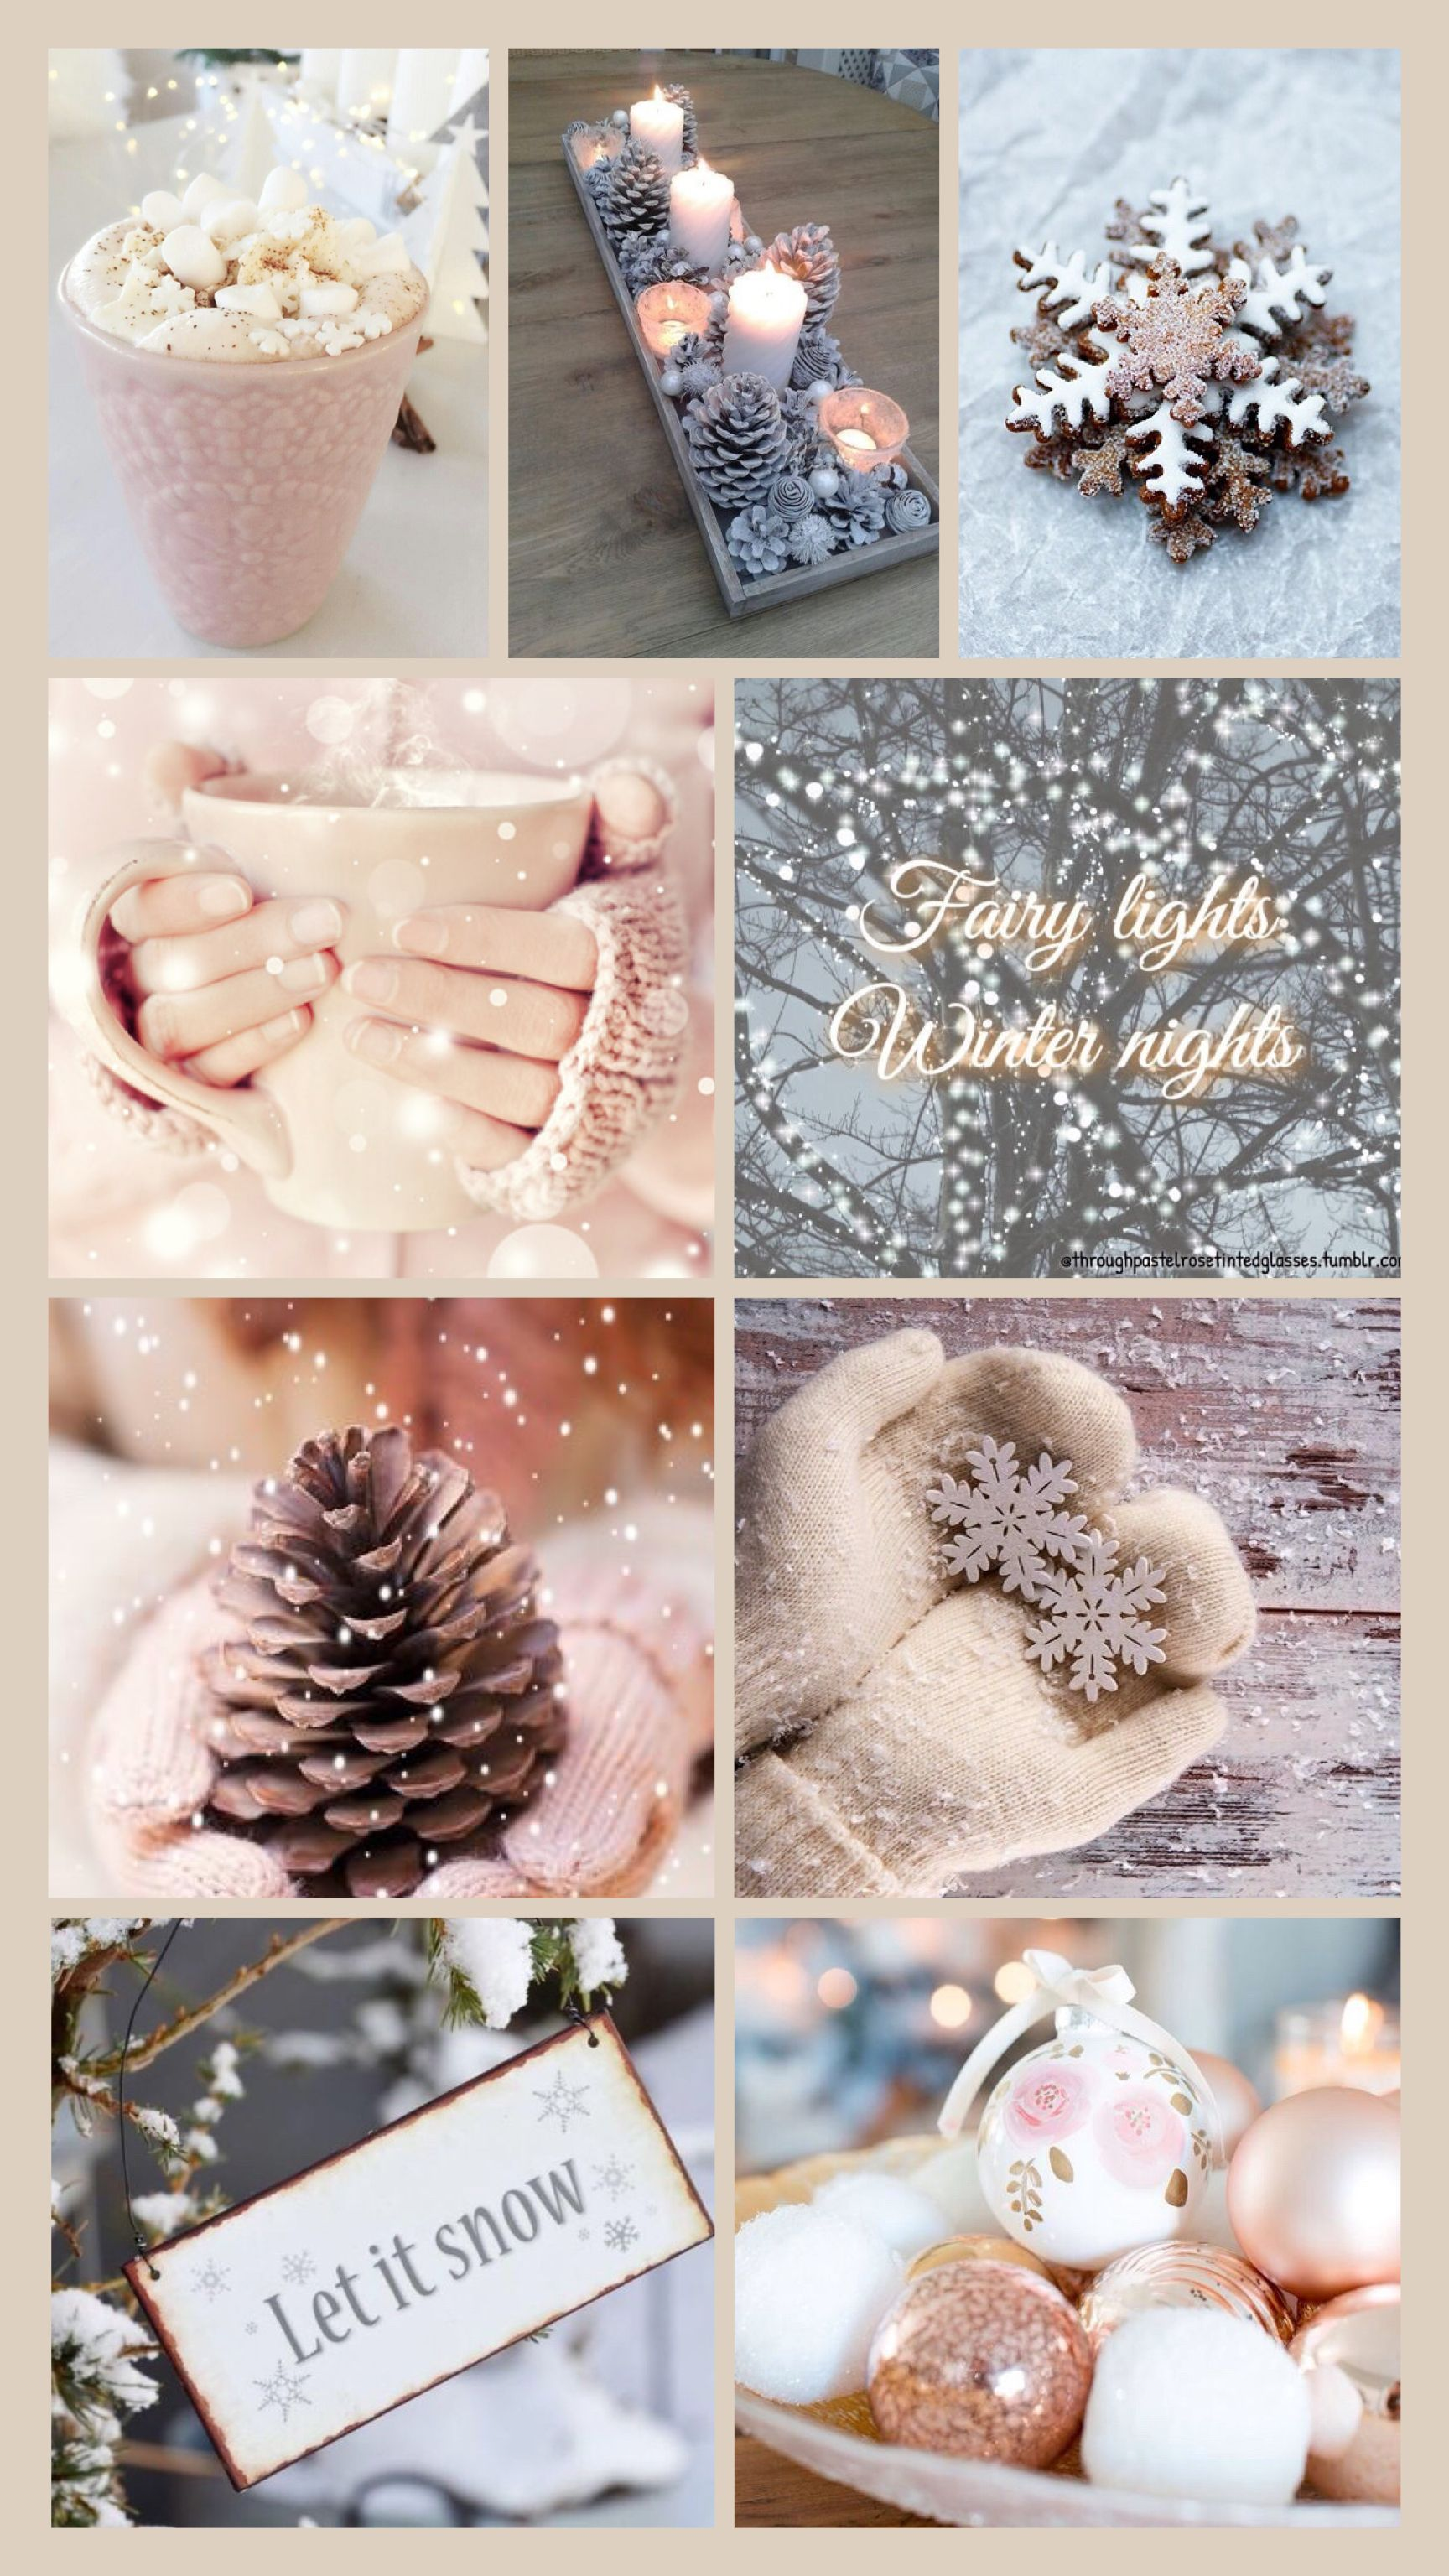 Aesthetic Christmas Wallpaper Collage